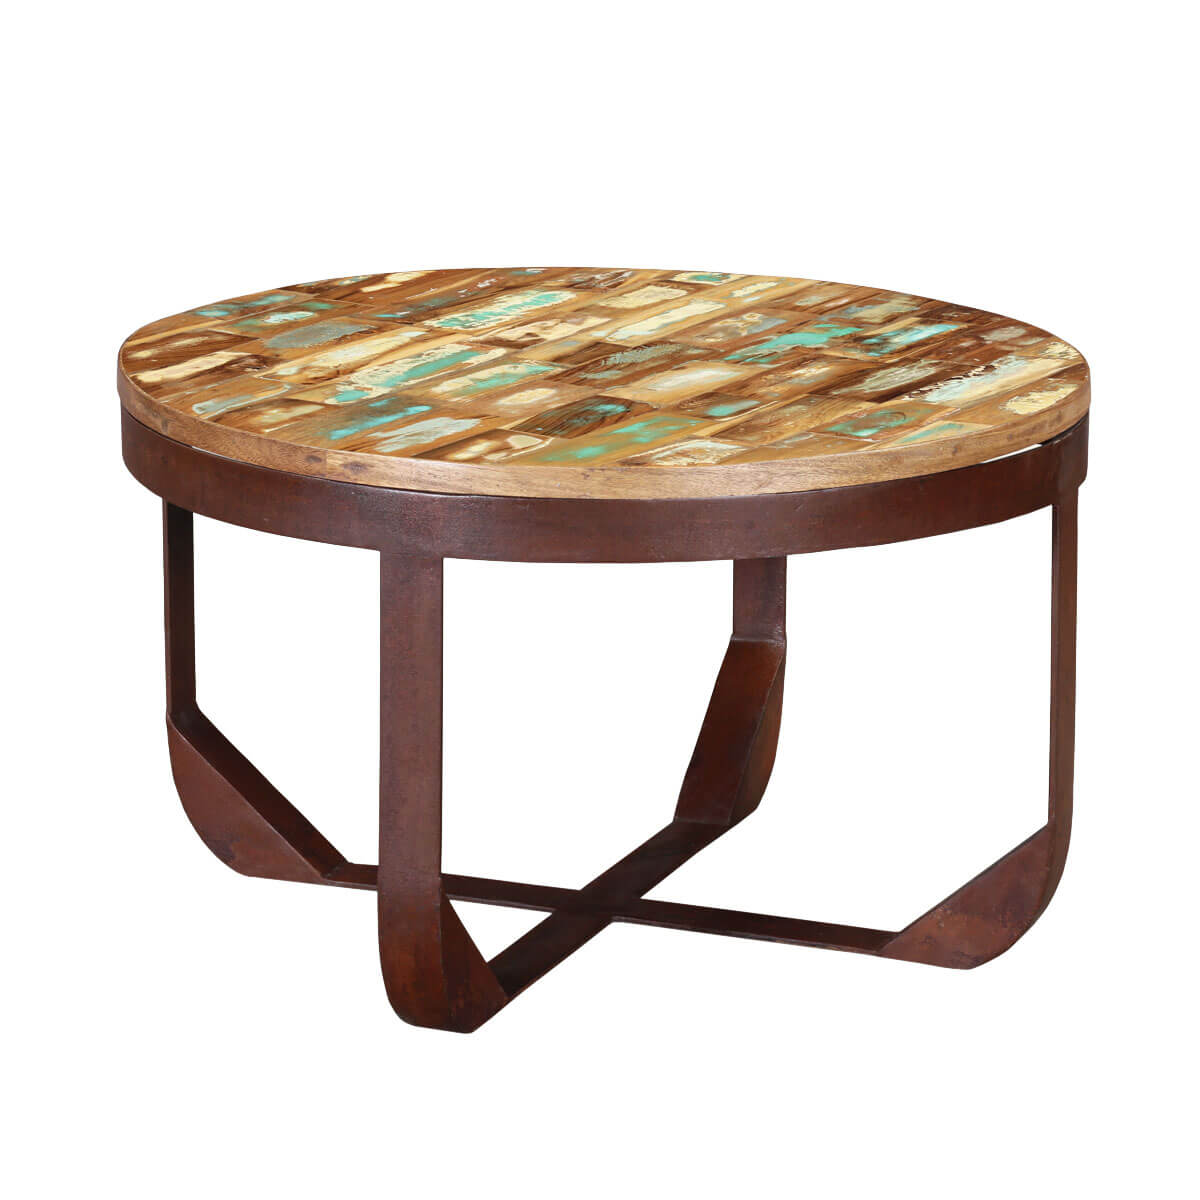 industrial-29-round-handcrafted-reclaimed-wood-rustic-coffee-table